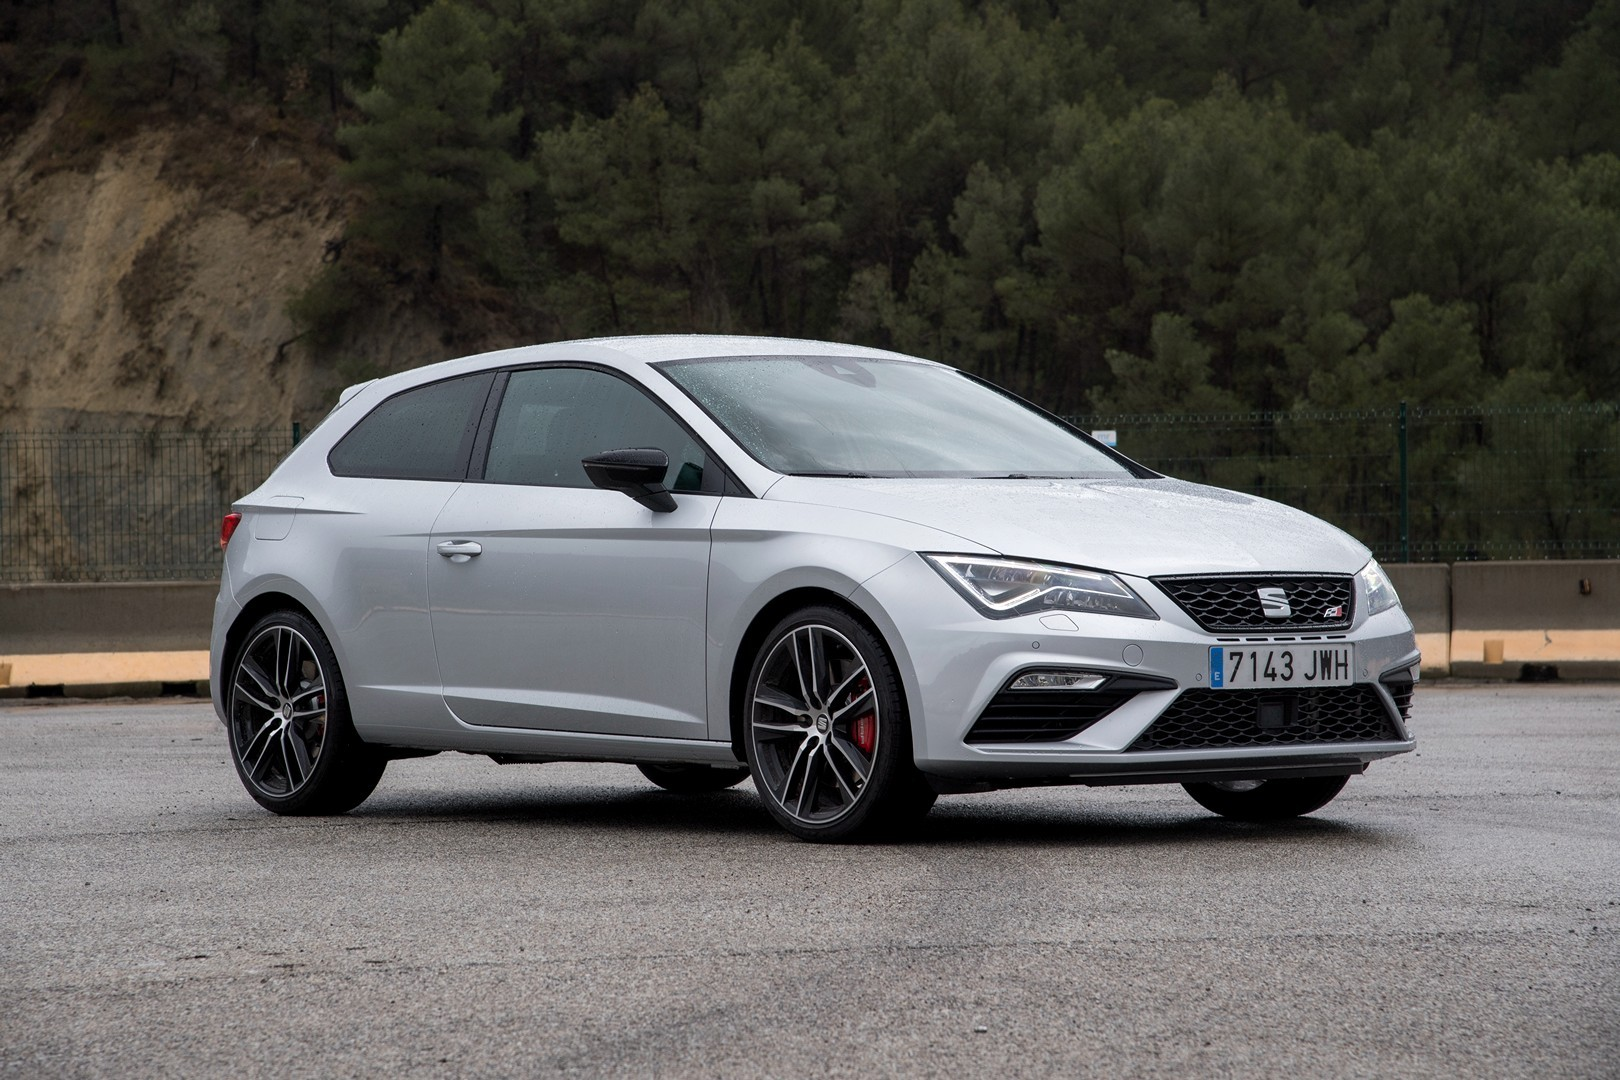 new leon cupra 300 39 s awd system discussed in 1 hour review. Black Bedroom Furniture Sets. Home Design Ideas